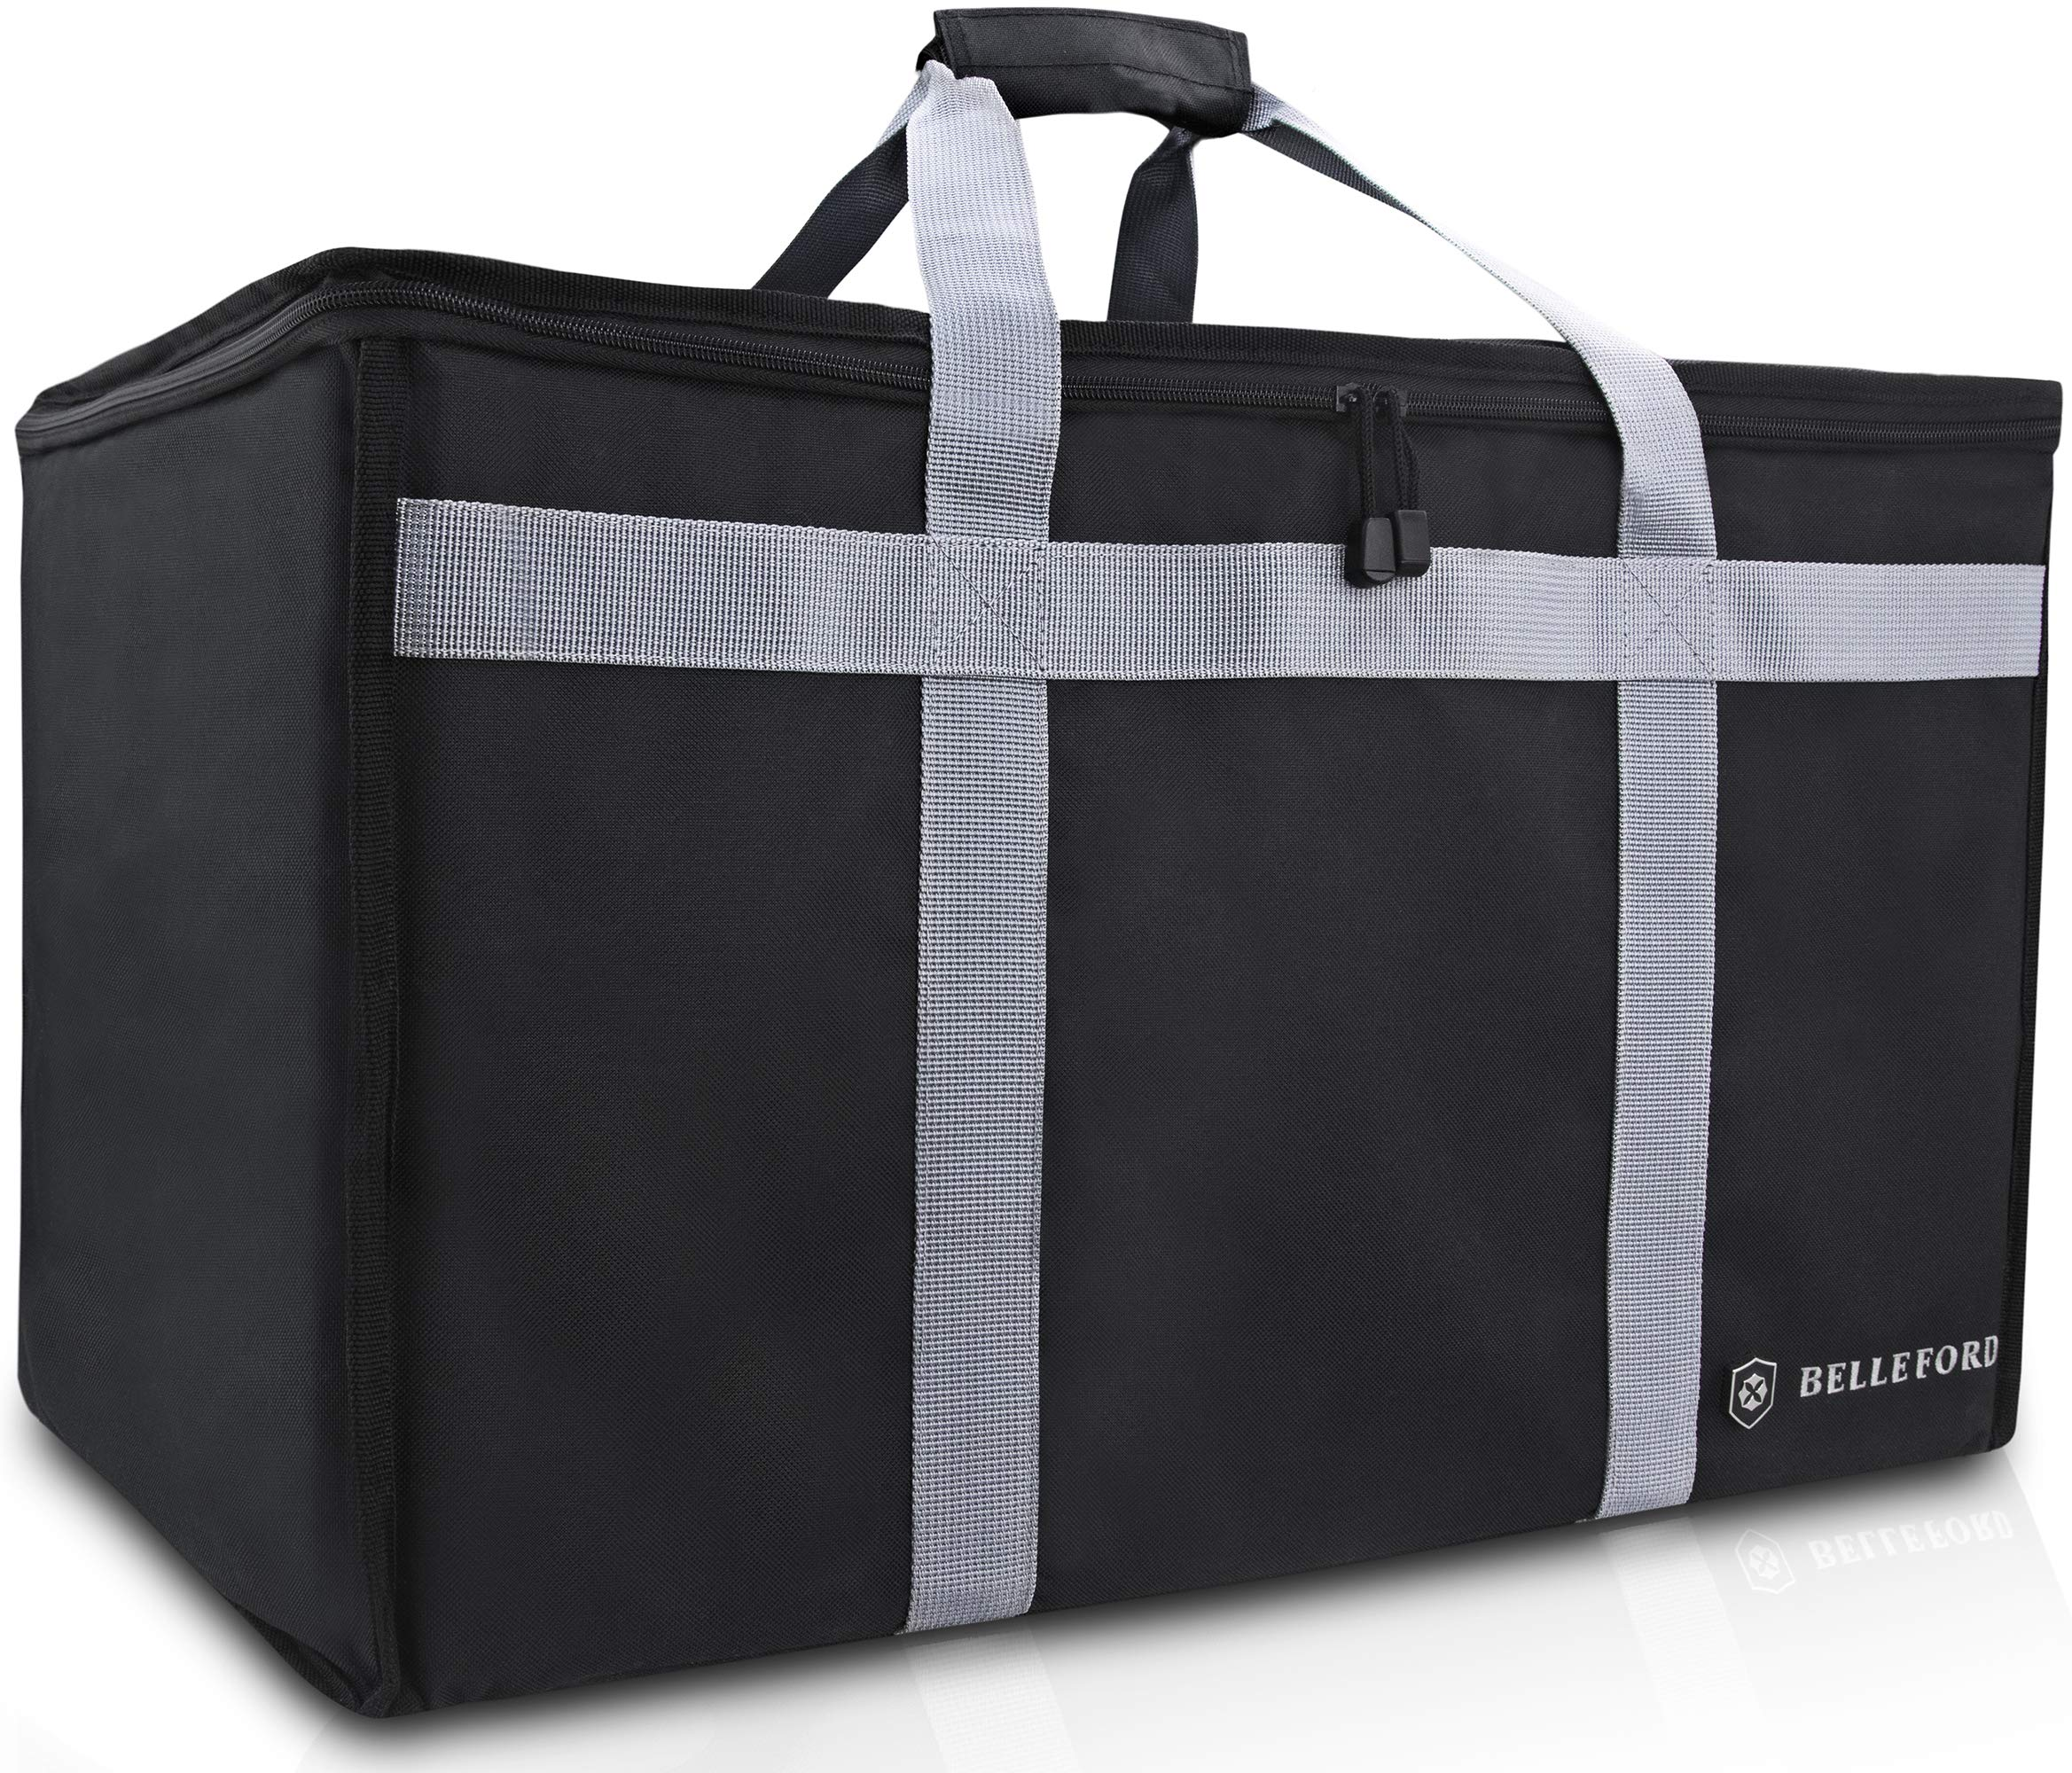 Insulated Food Delivery Bag - Waterproof Warmer Cooler Grocery Storage Bags - Restaurant Buffet Server, Warming Tray, Lunch Container Store - Steamer, Pizza Box, Chafing Dish & Casserole Carrying Case by Belleford